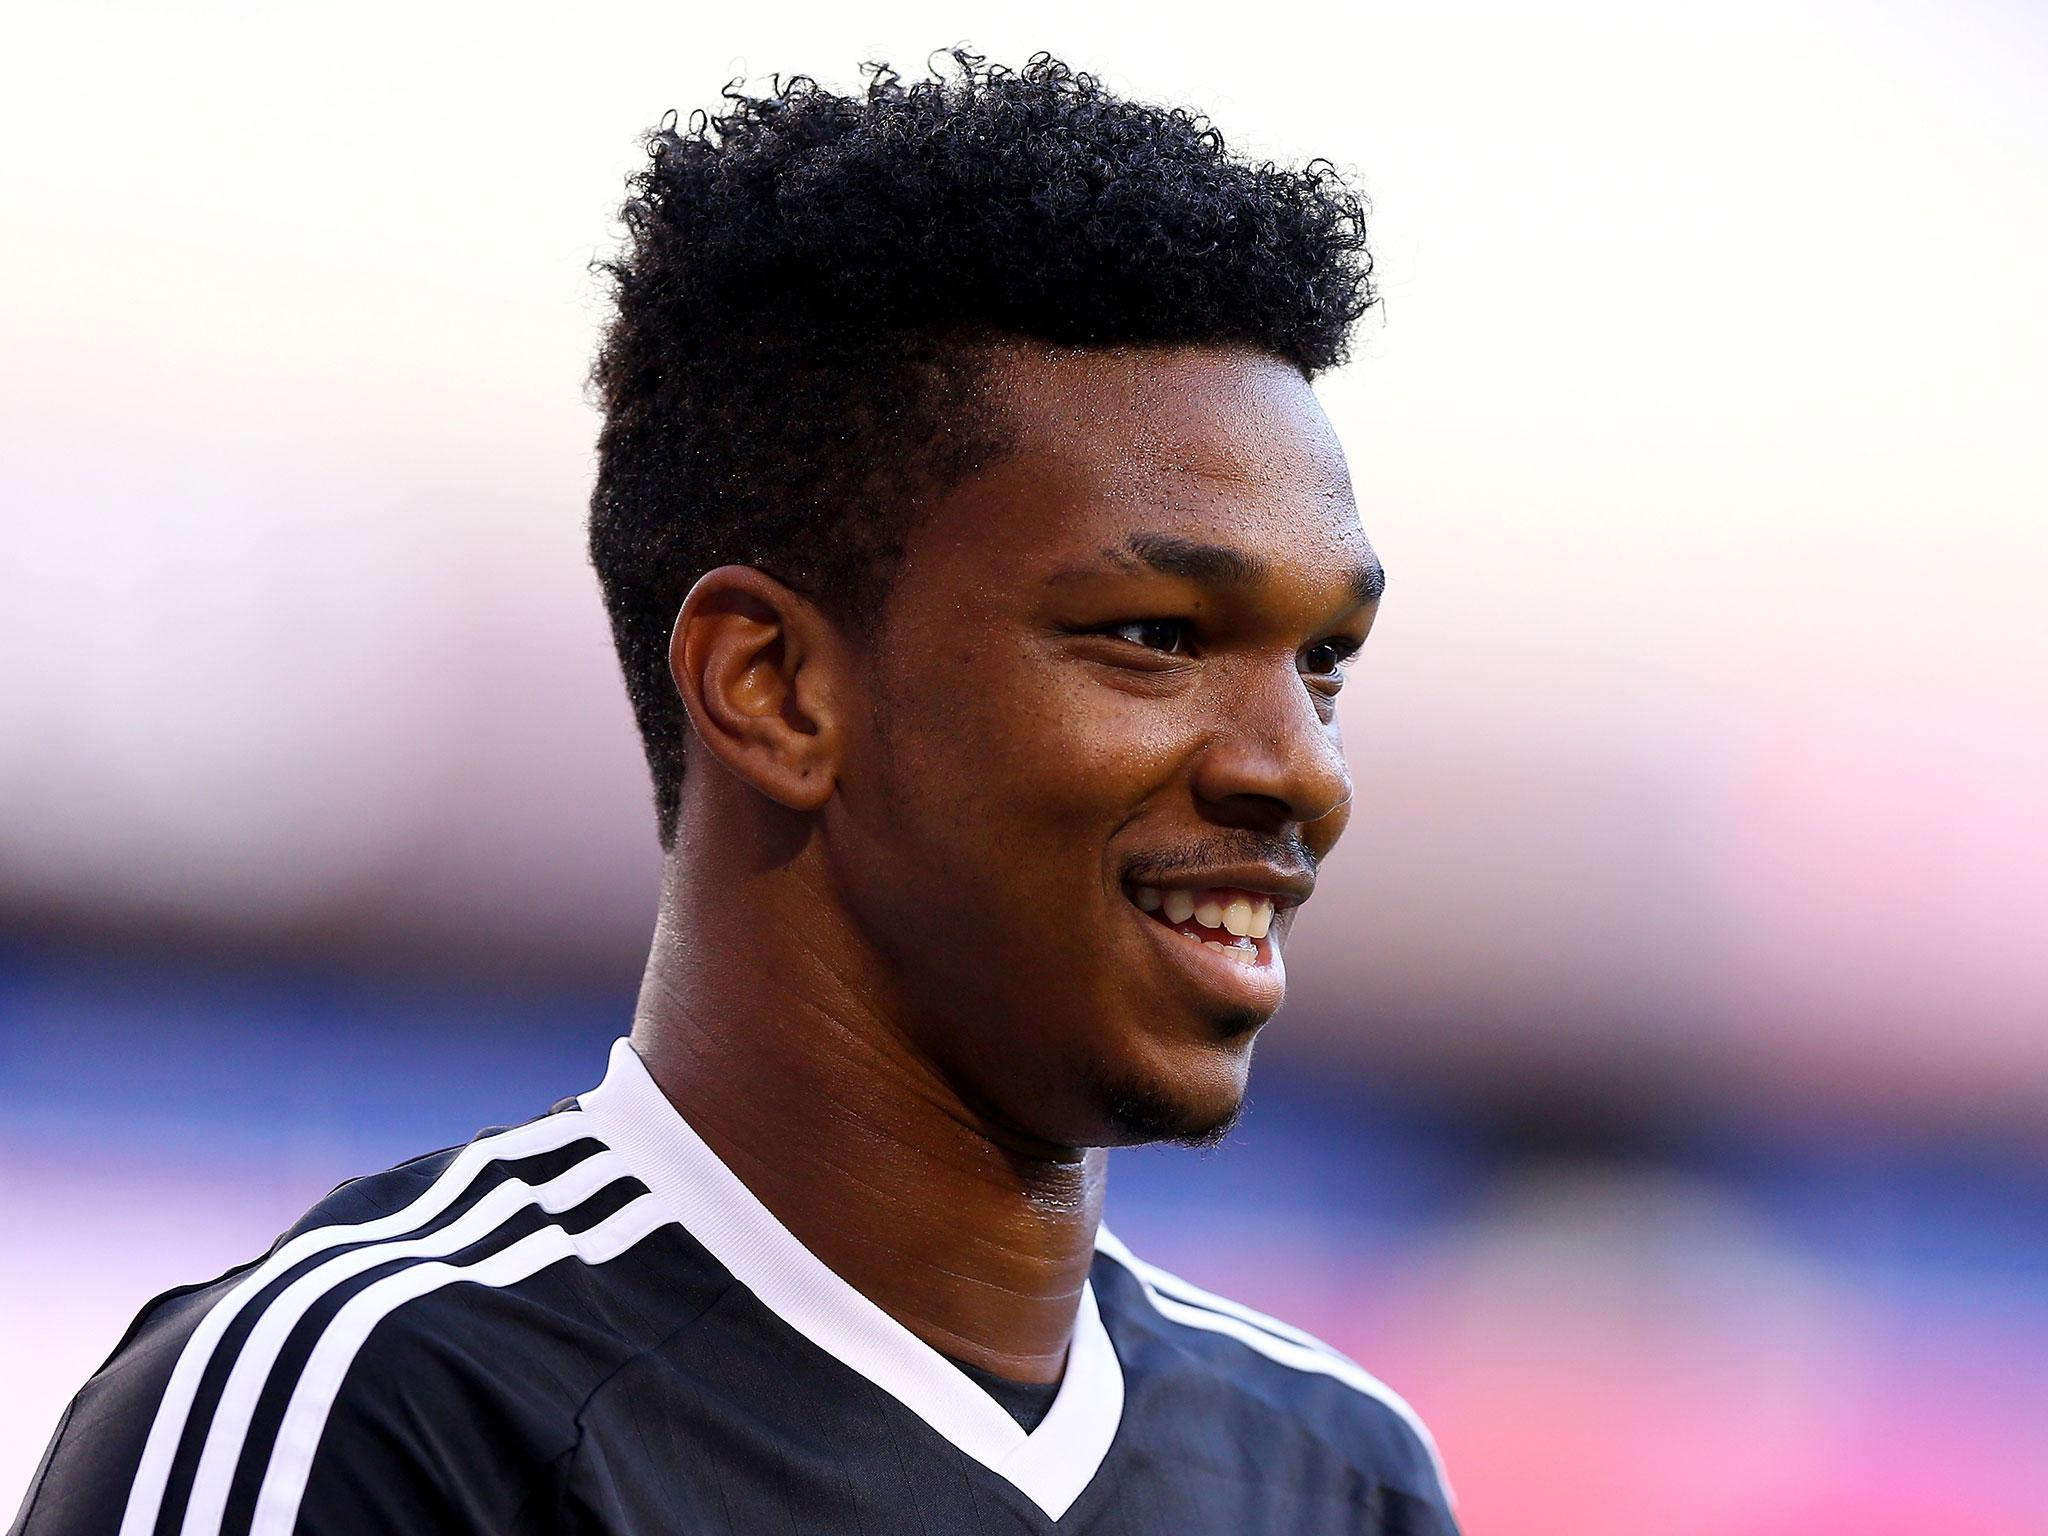 Wycombe Wanderer's Jamal Blackman sets his sights on the bright lights of the Premier League